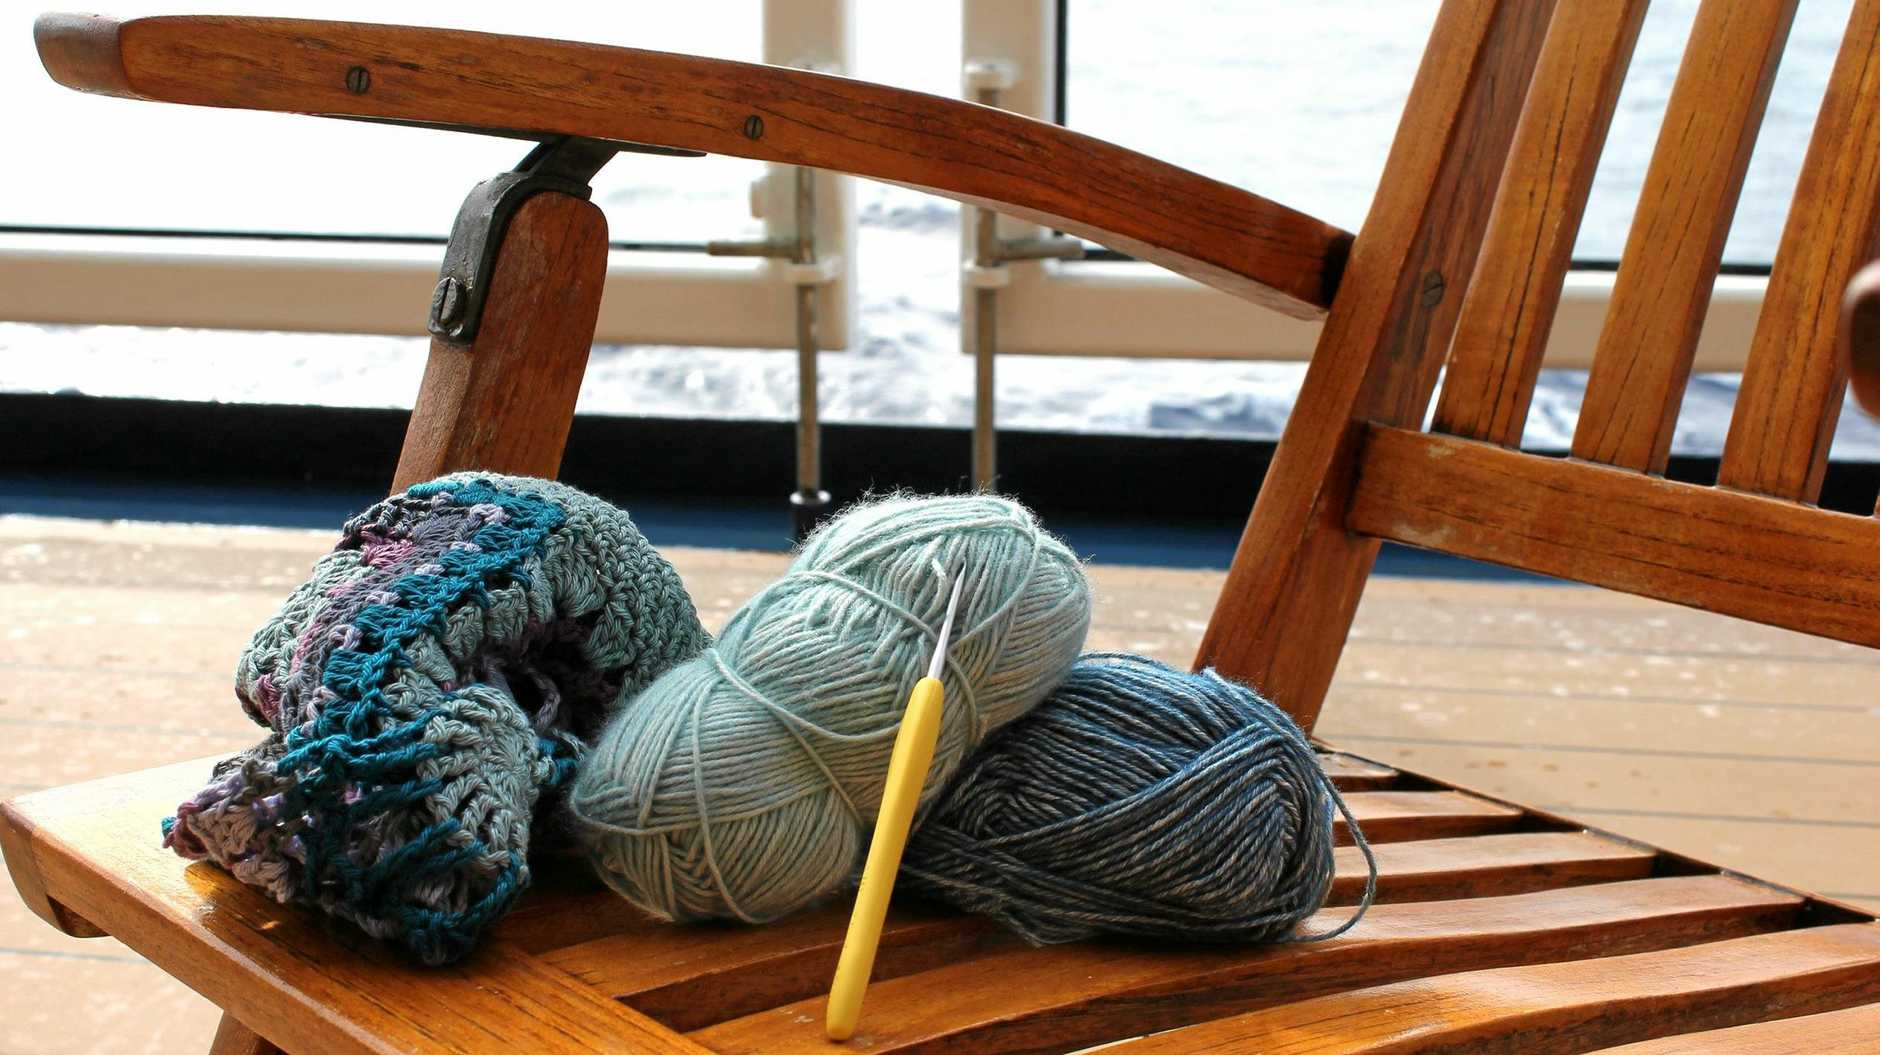 CRAFTY CRUISING: Crochet is enjoying a revival as a simple, calming activity which can be enjoyed while cruising onboard Celebrity Solstice.